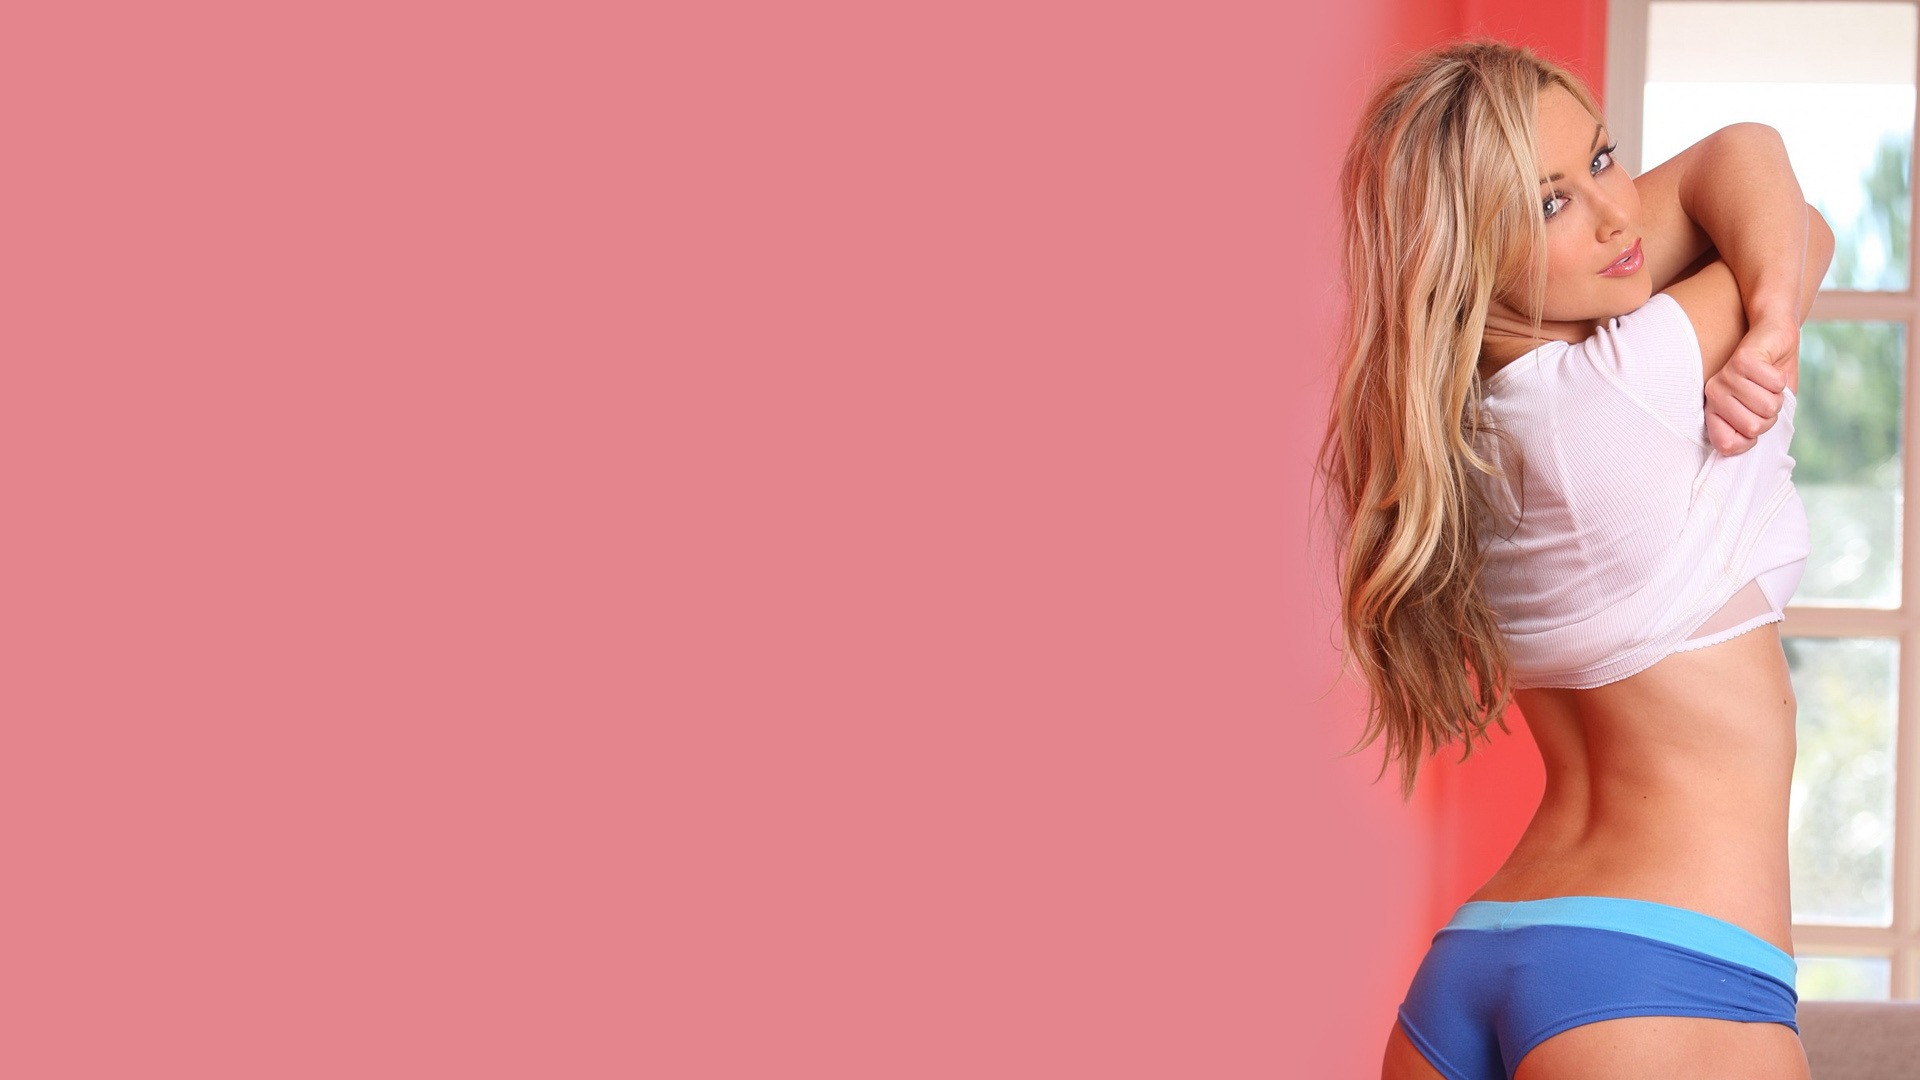 You are here home kayden kross wallpapers wallpaper download